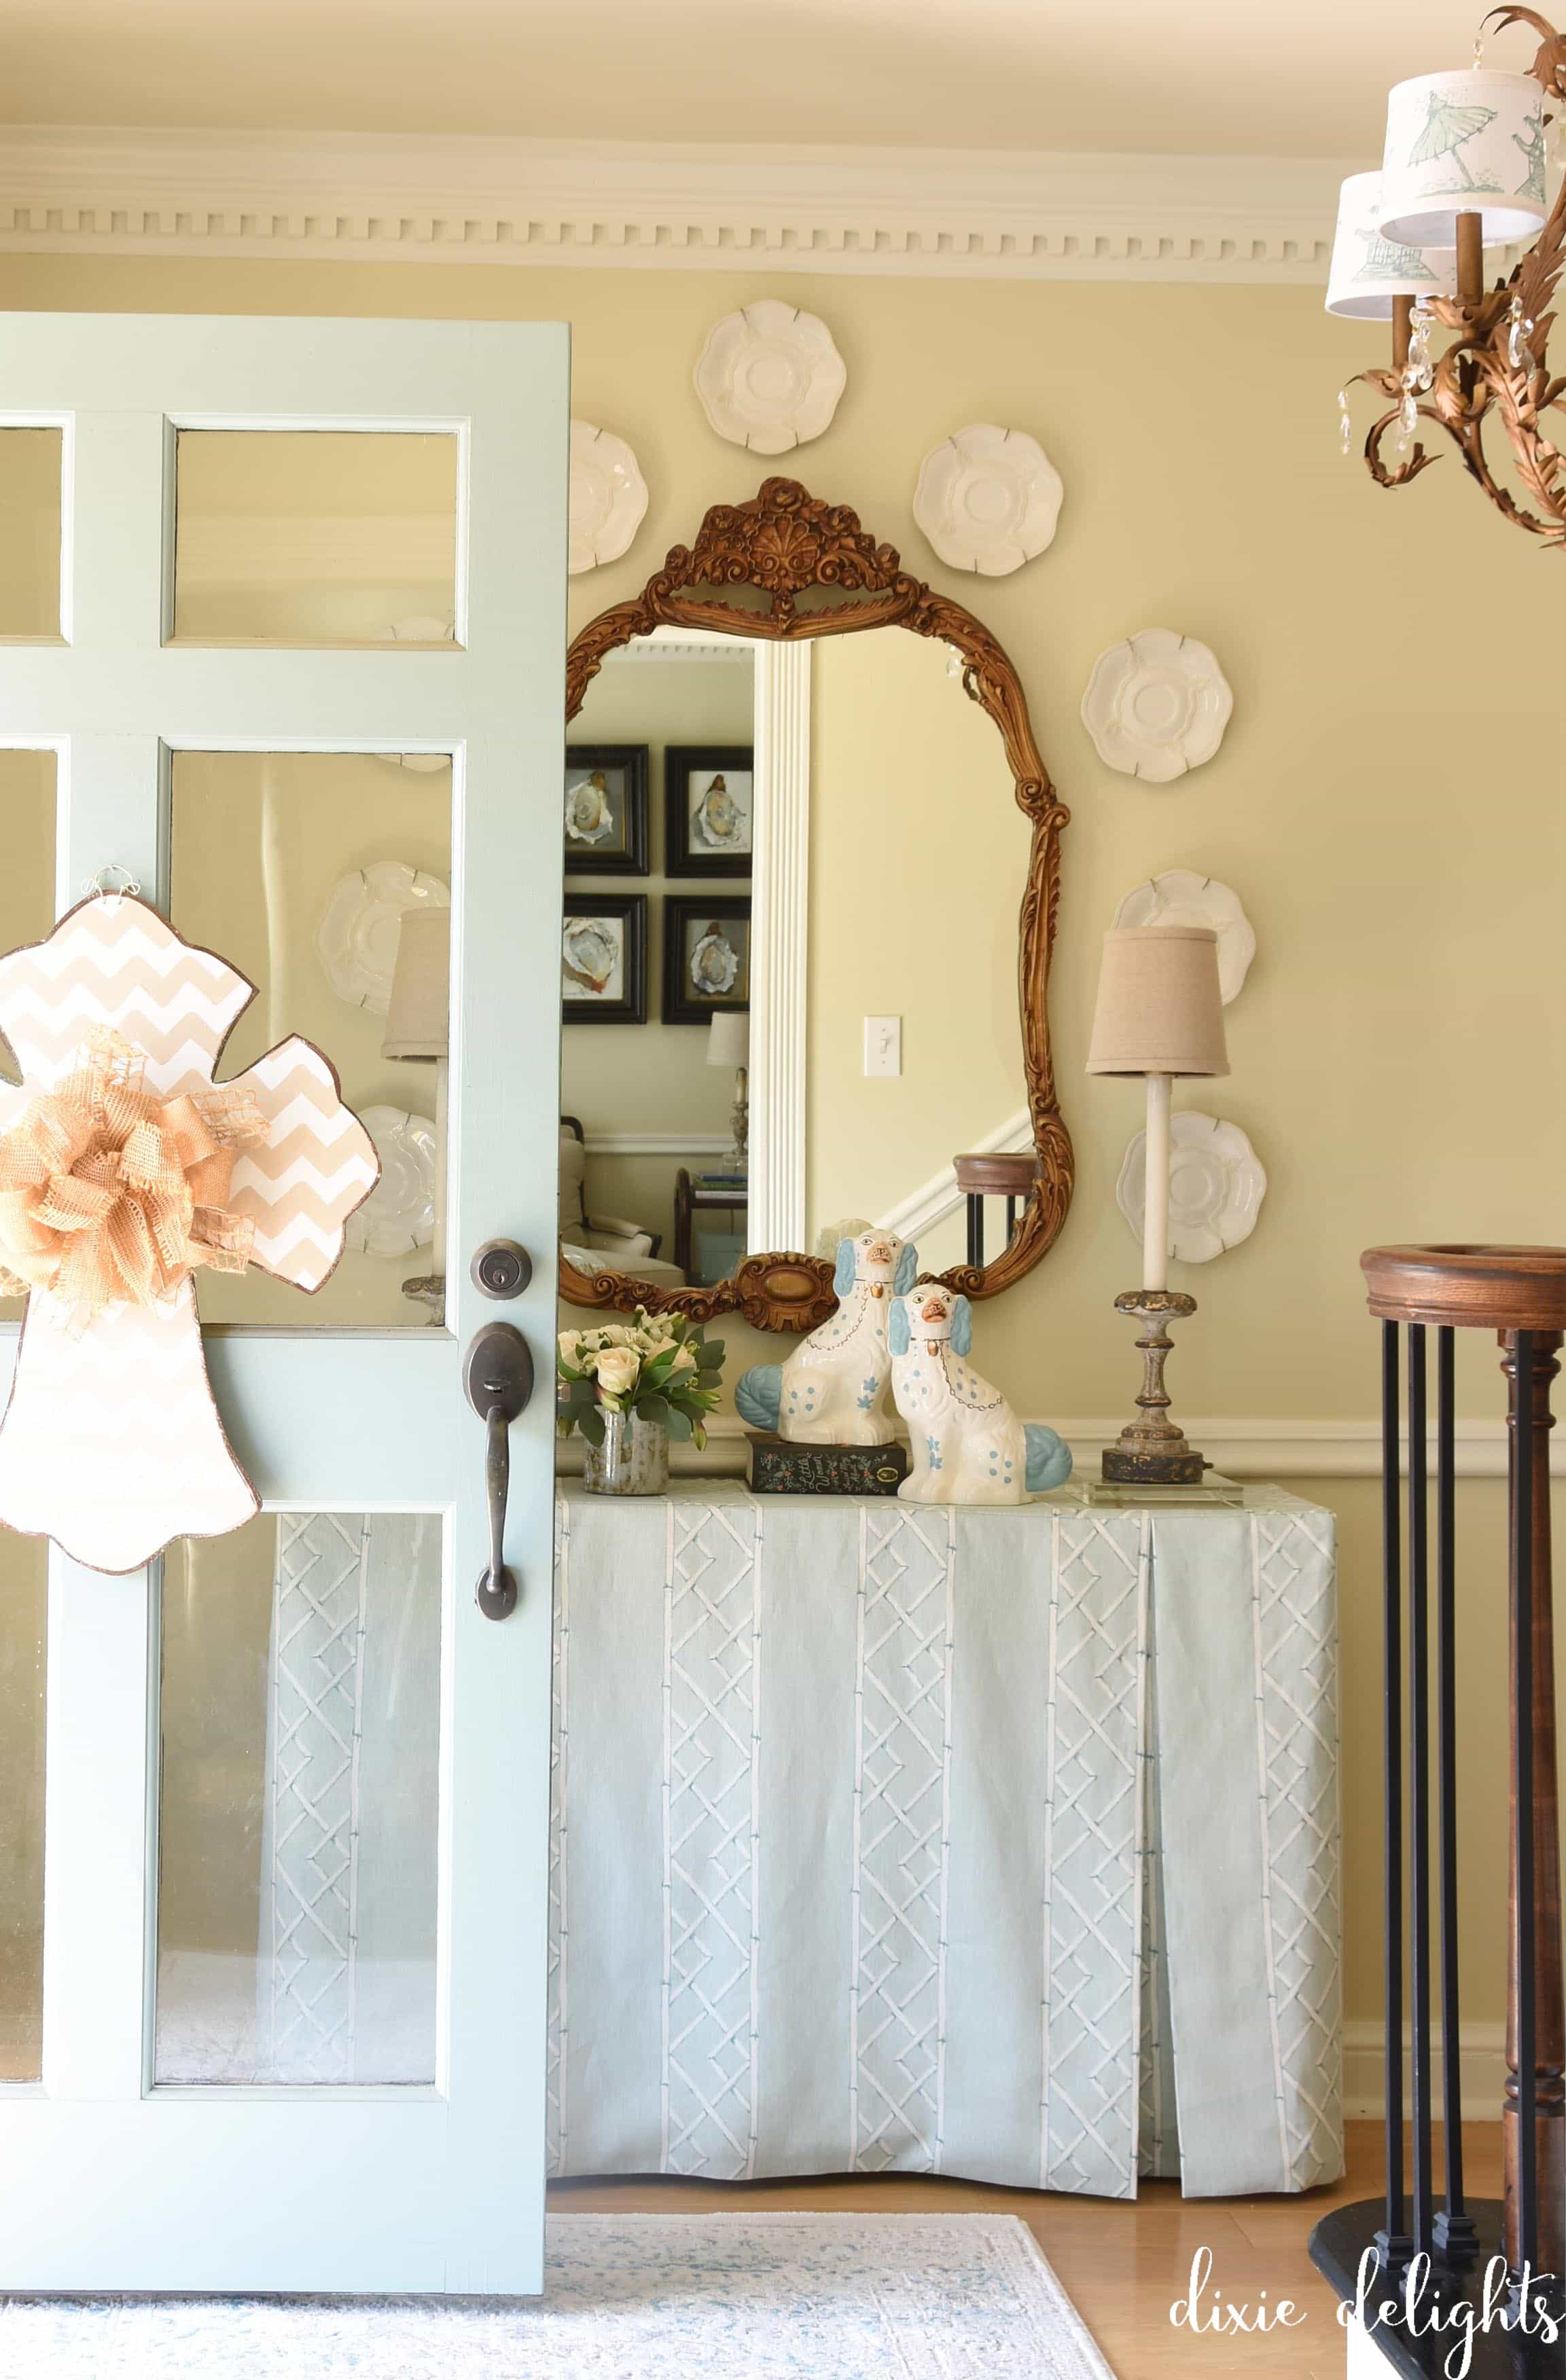 The Delightful Home {Spring Foyer} – Dixie Delights